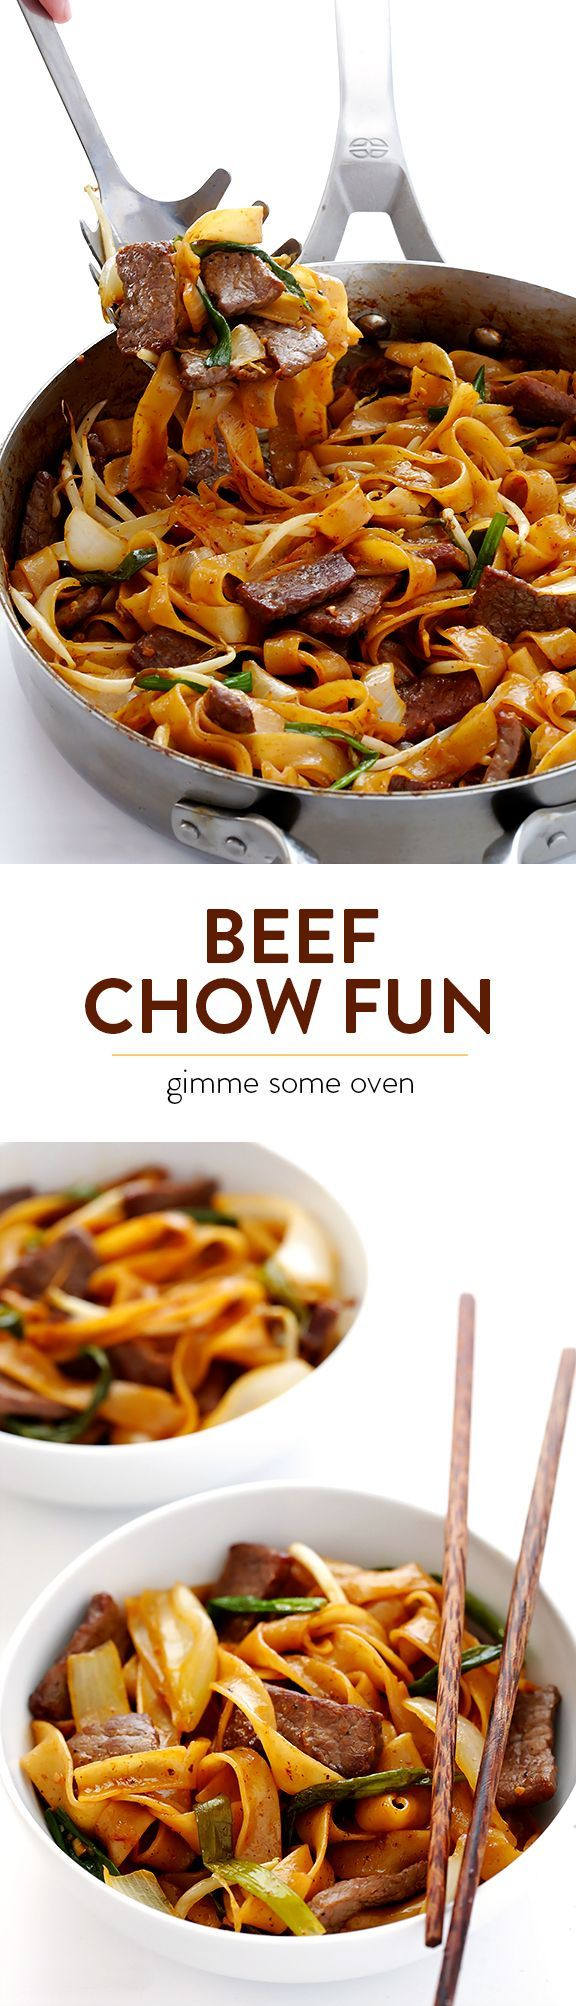 beef chow fun beef  noodle stir fry  recipe  asian